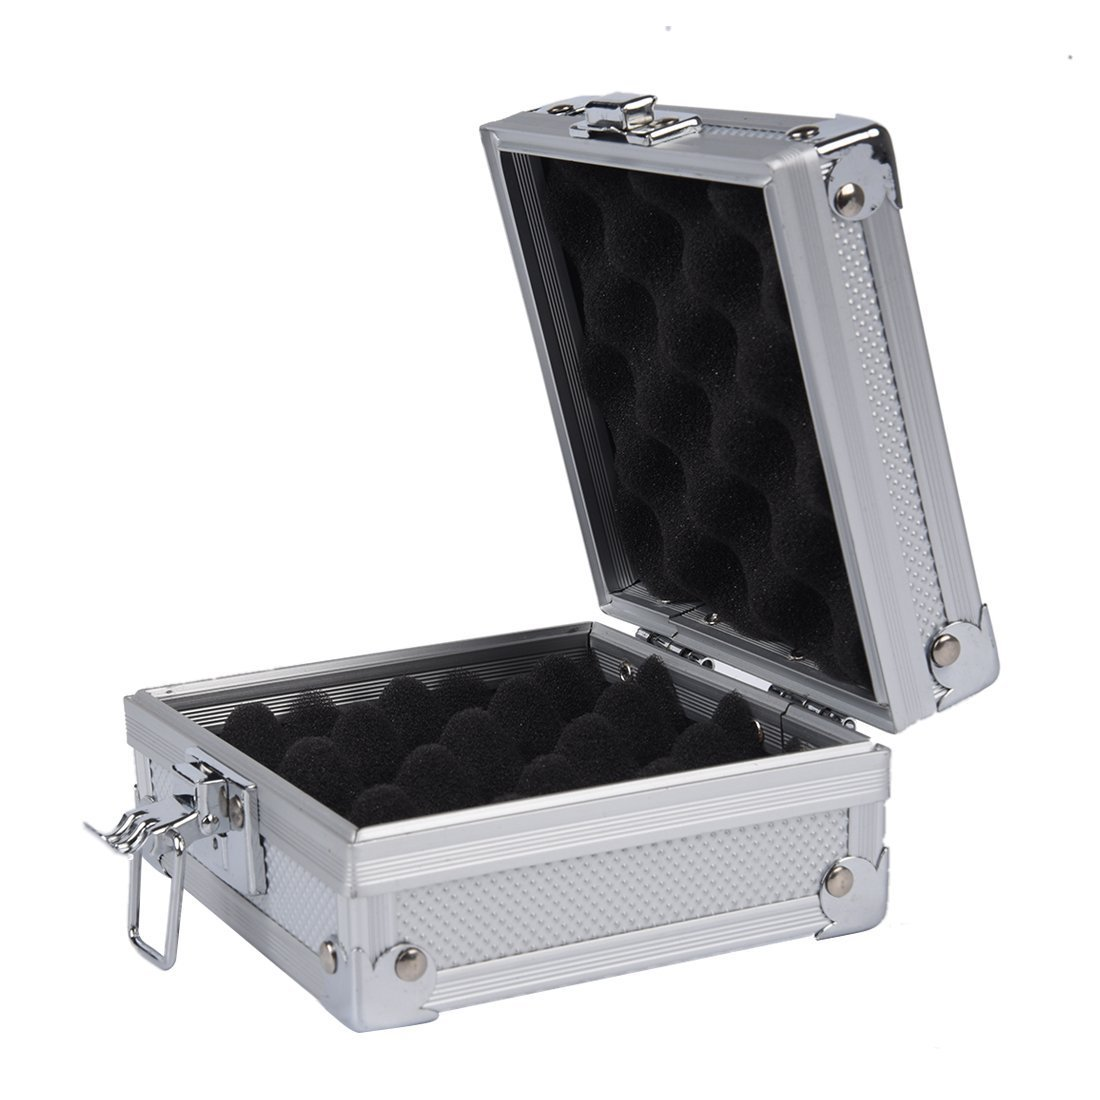 A fine gift Tattoo Equipment Box Professional Empty Tattoo Machine Box Aluminum Alloy Case With Sponge For Tattoos Equipments (Color : Silver)